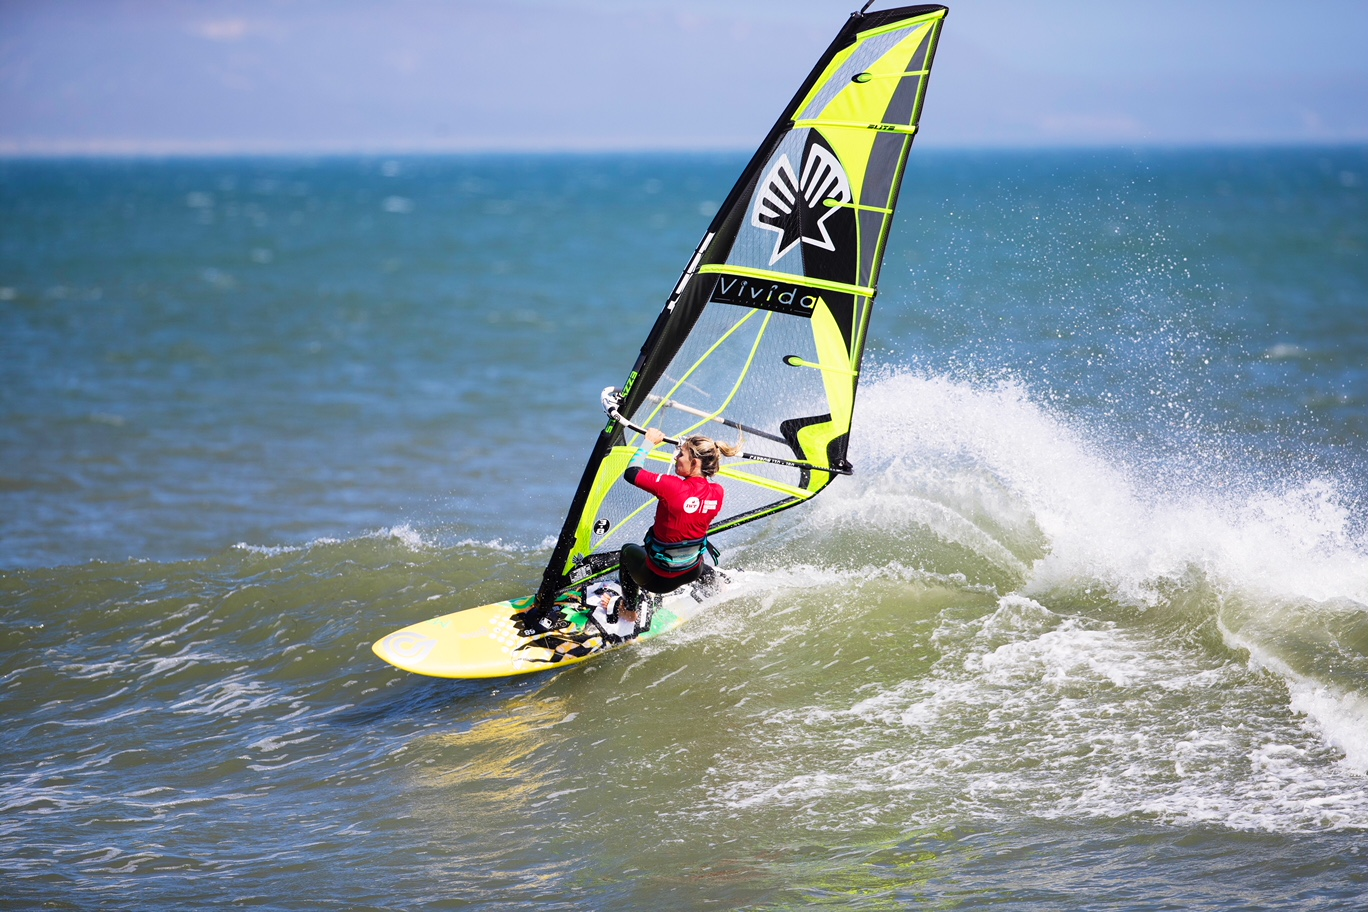 Top 11 Windsurfing Spots in the World